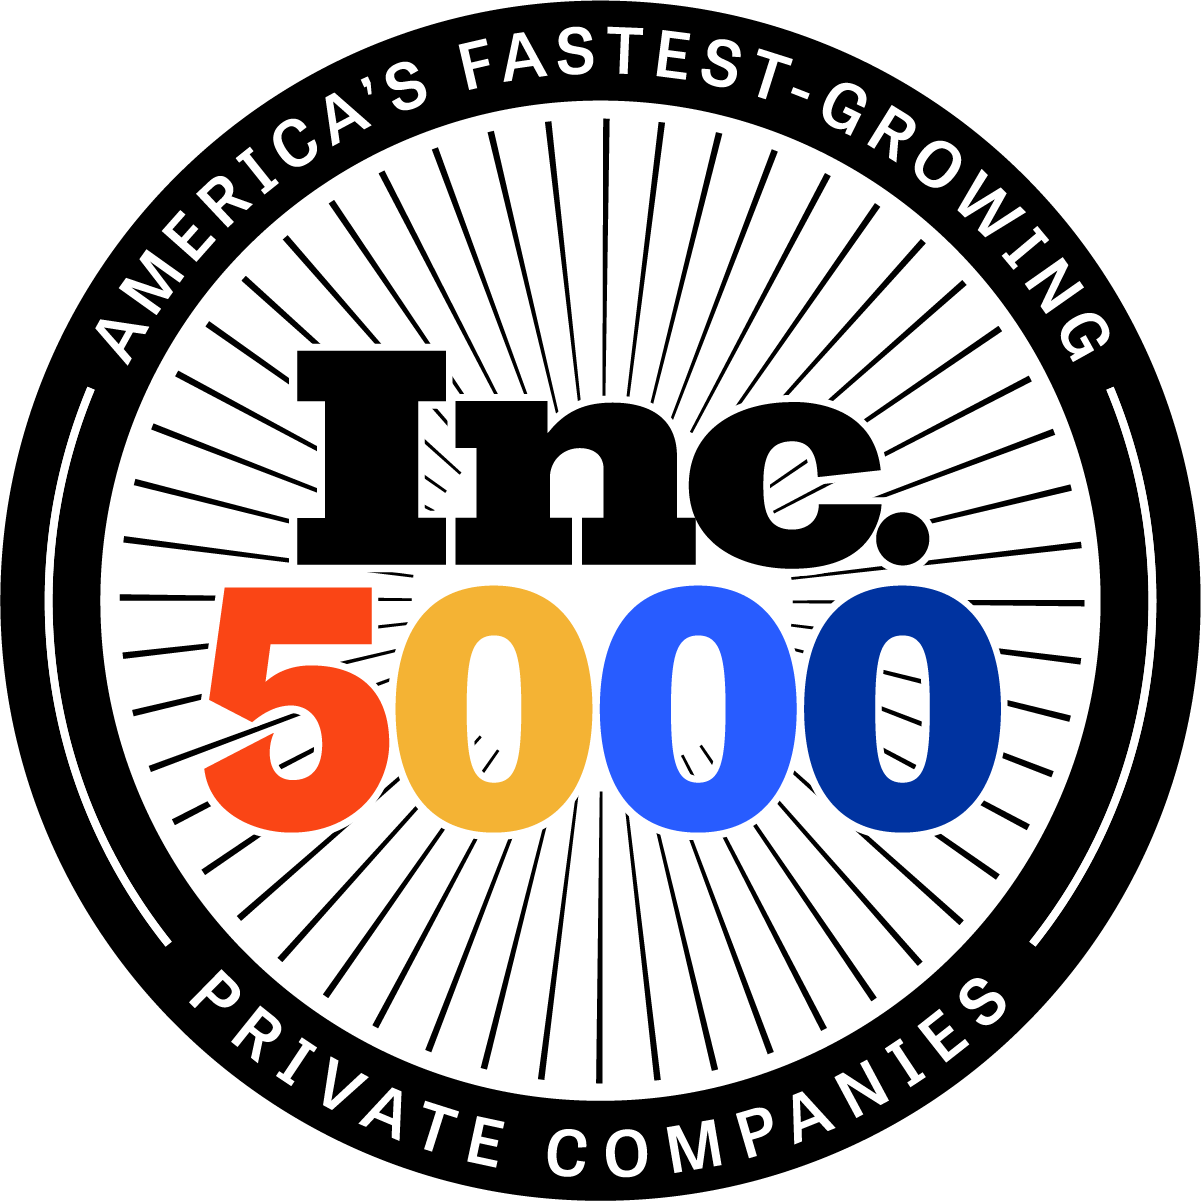 Unacast has officially ranked as one of the fastest growing companies in the United States!